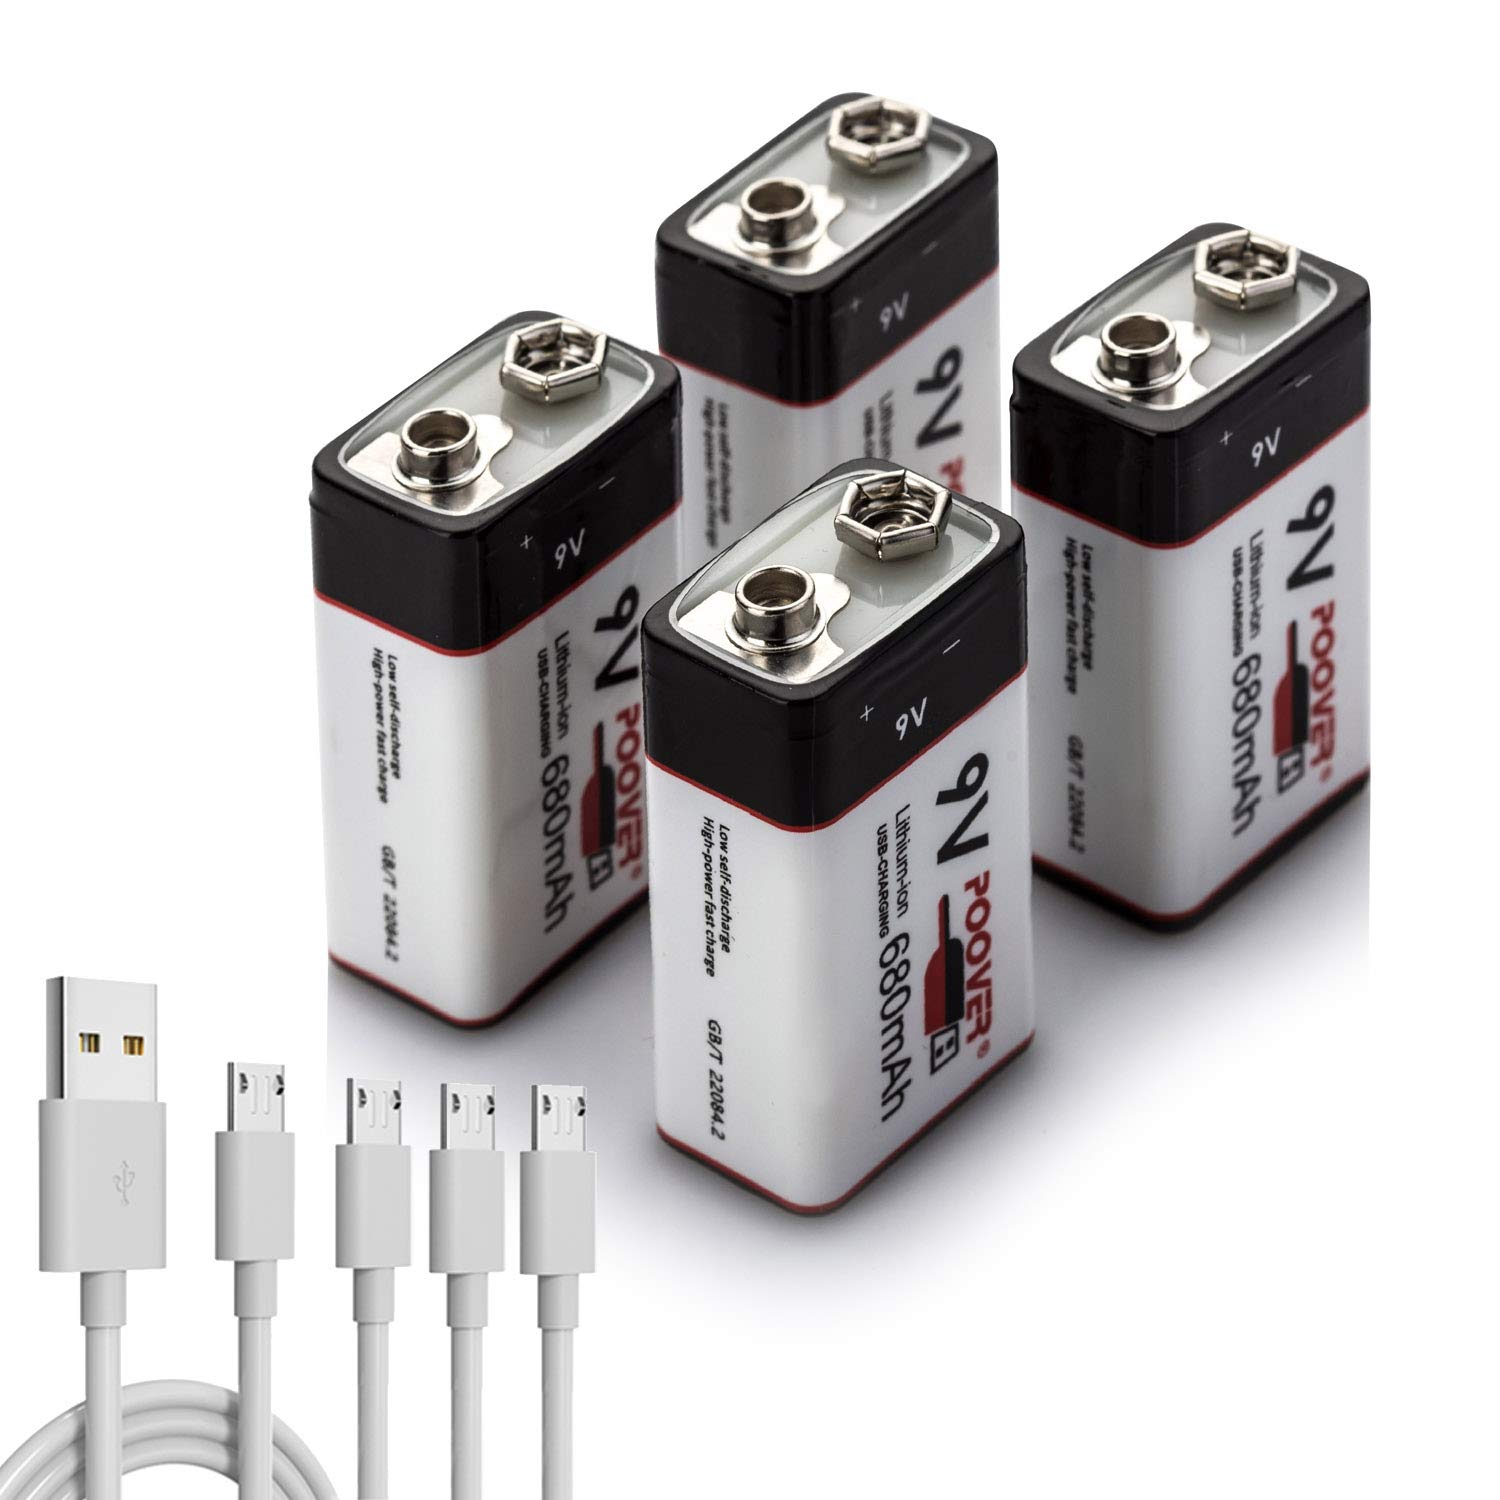 9v Battery,POOVER 680mAh Rechargeable 9volt Lithium Li-ion Battery with 9v Connector Smoke Alarm(4 Pack USB battery & 4-1 cable)